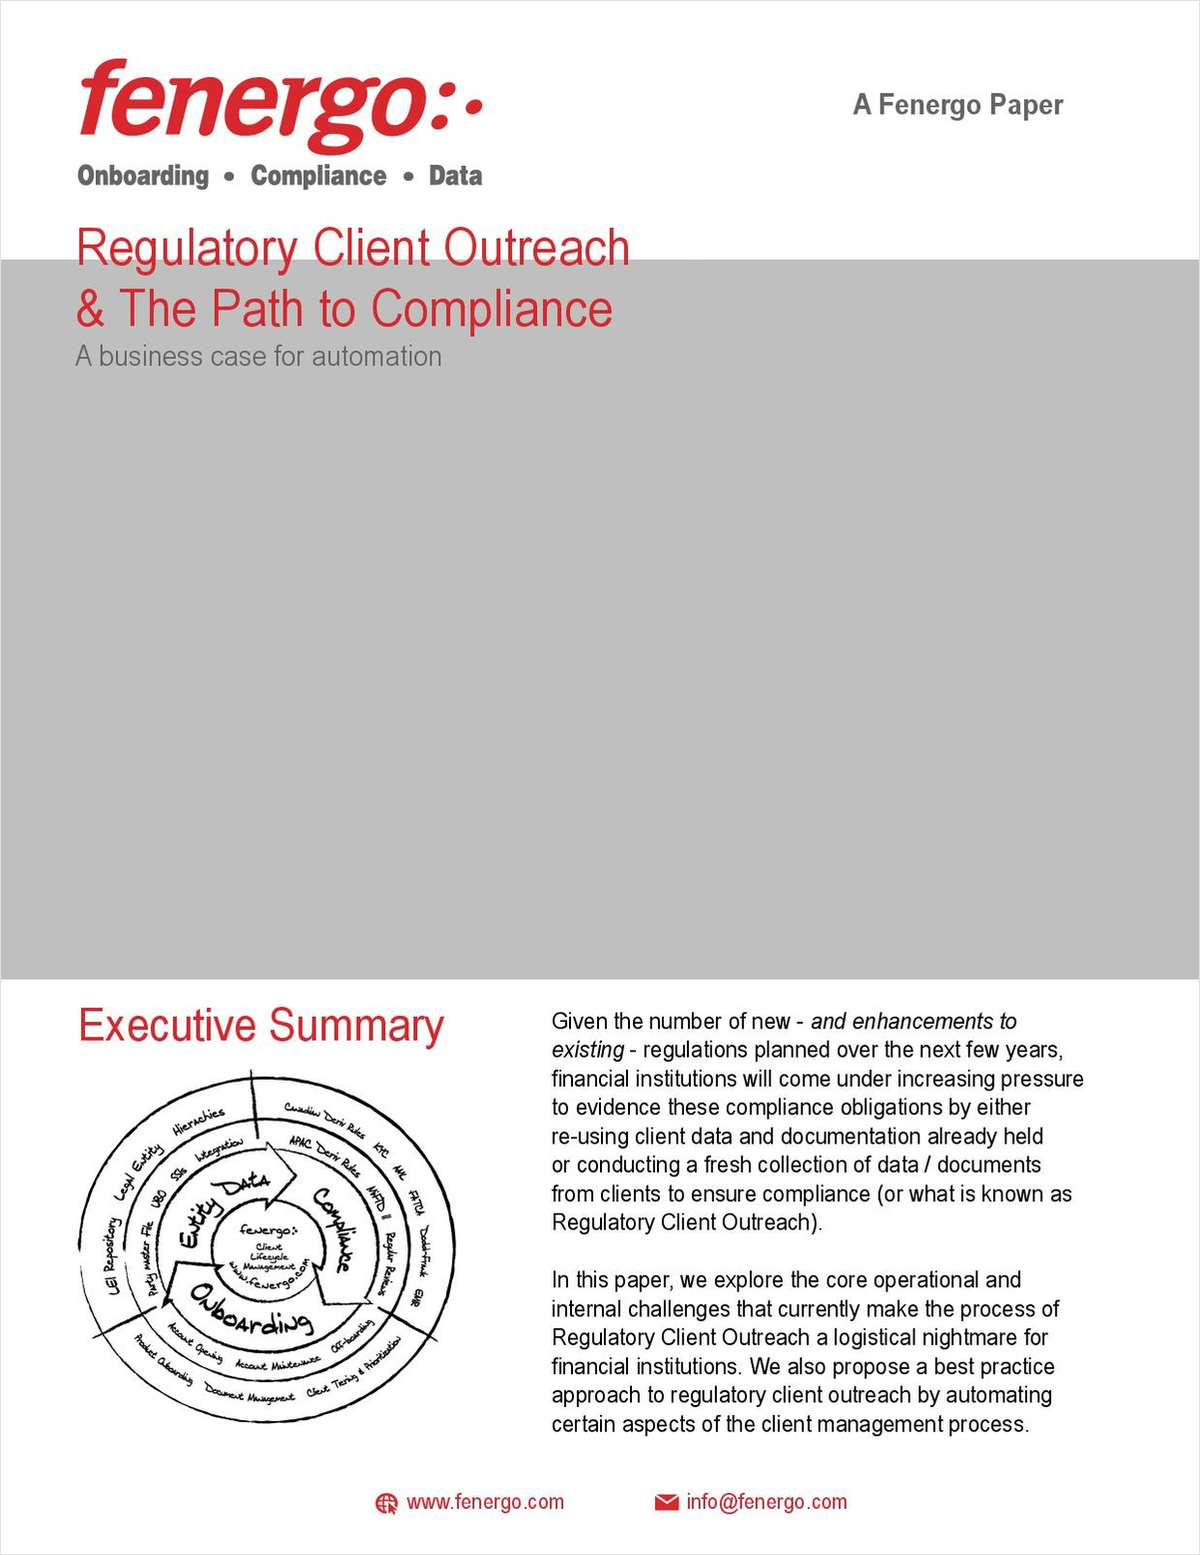 Regulatory Client Outreach & The Path to Compliance